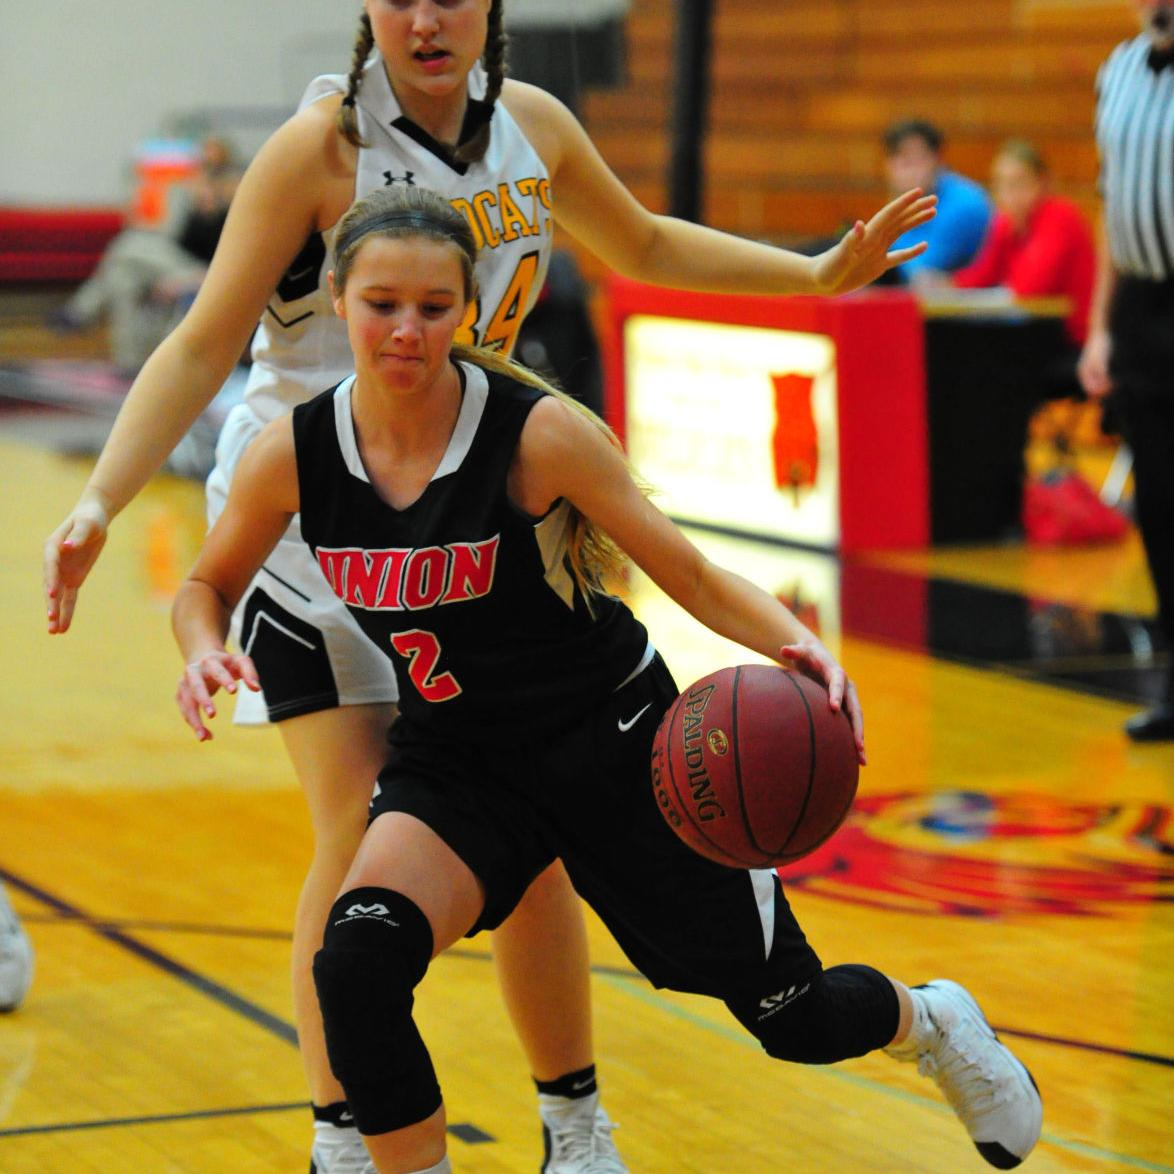 Girls Basketball — Union vs. Cuba, Union Tournament